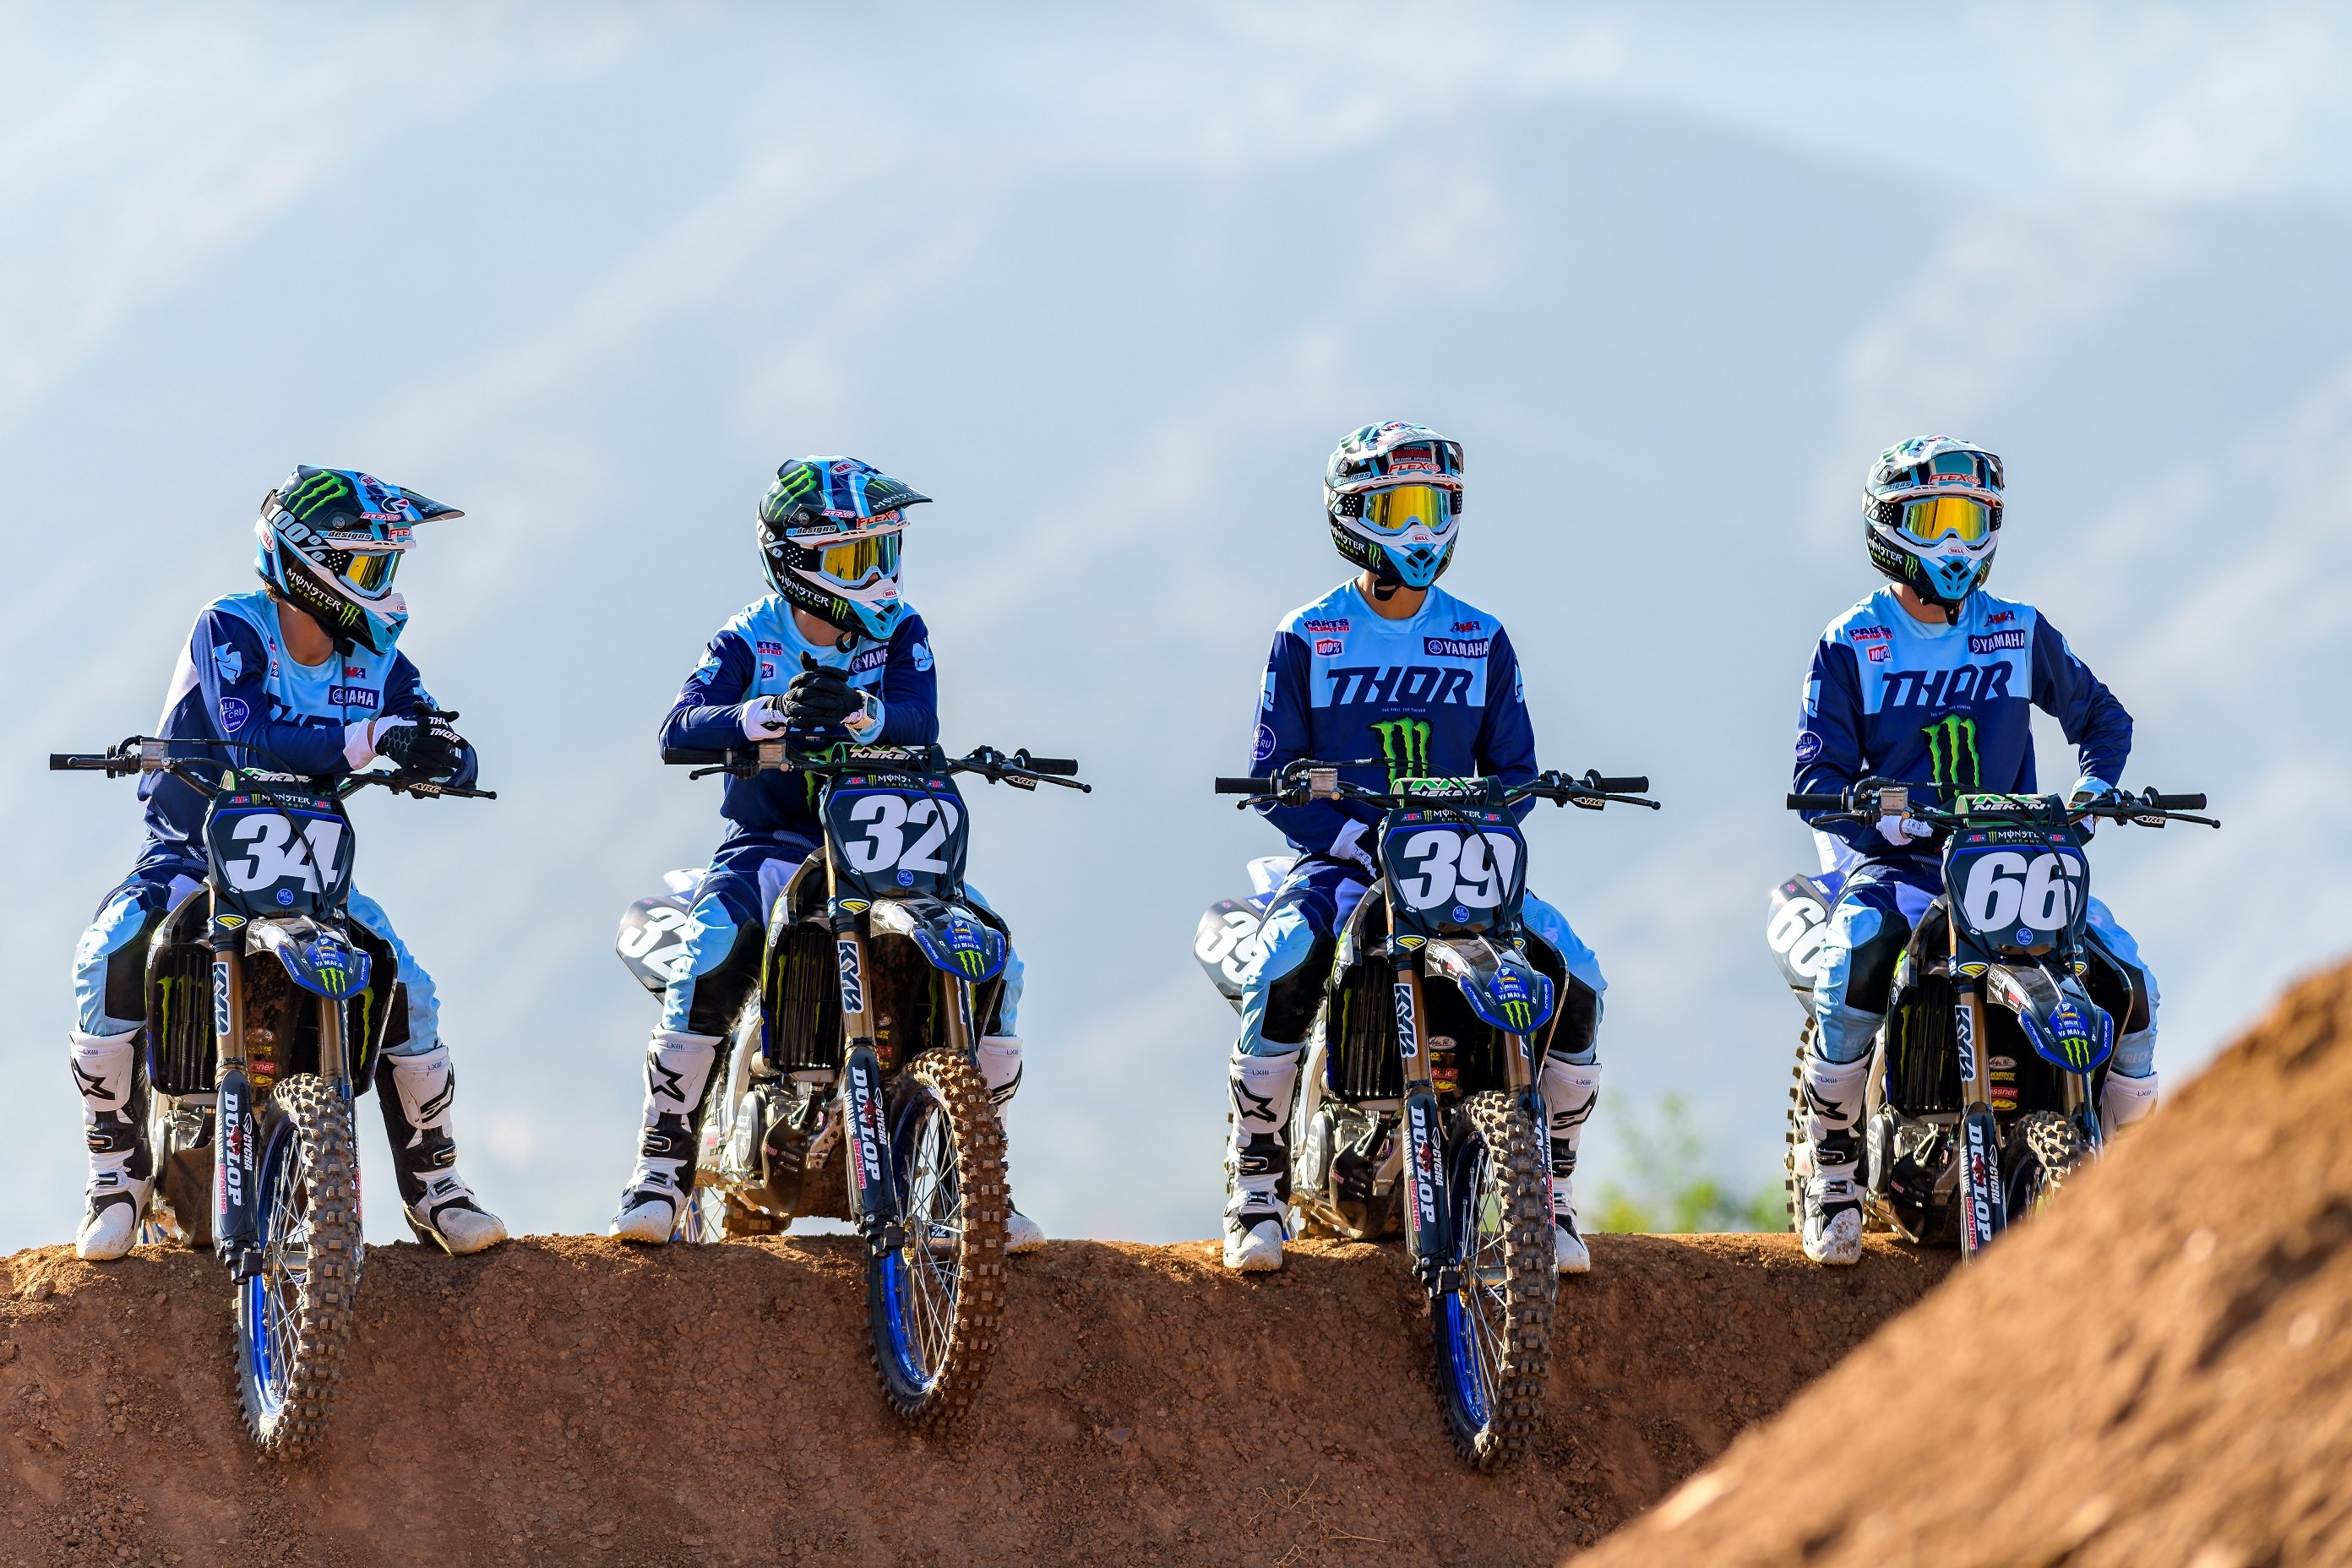 Star Racing Yamaha and Auto Clutches: How It All Started